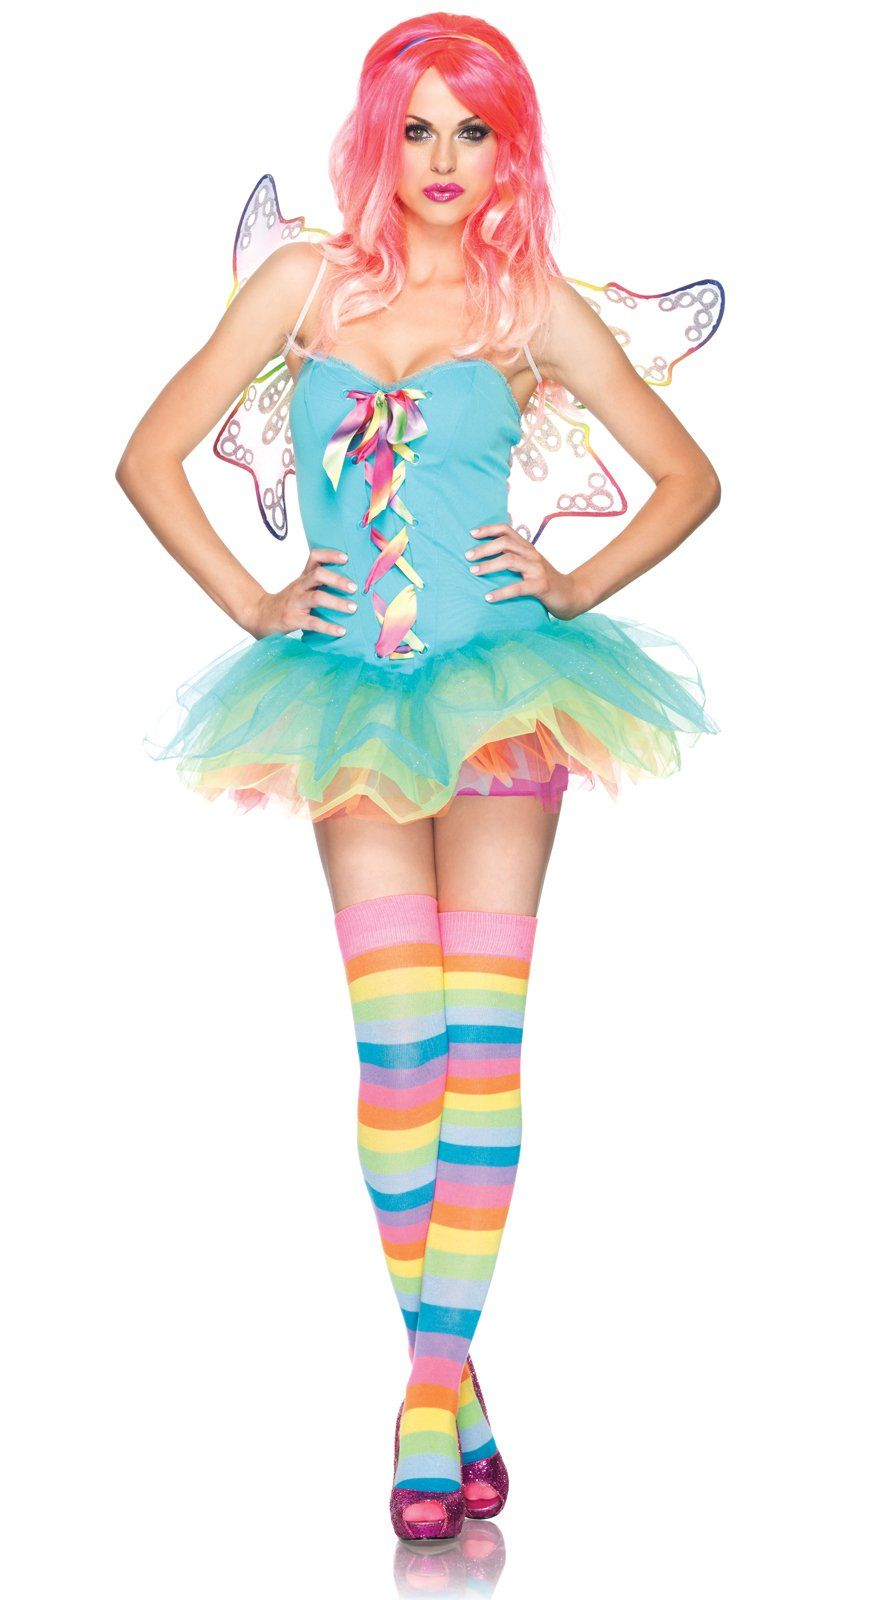 Rainbow Fairy Adult Costume$54.99  sc 1 st  Pinterest & Rainbow Fairy Adult Costume | Rainbow fairies Costumes and Candyland